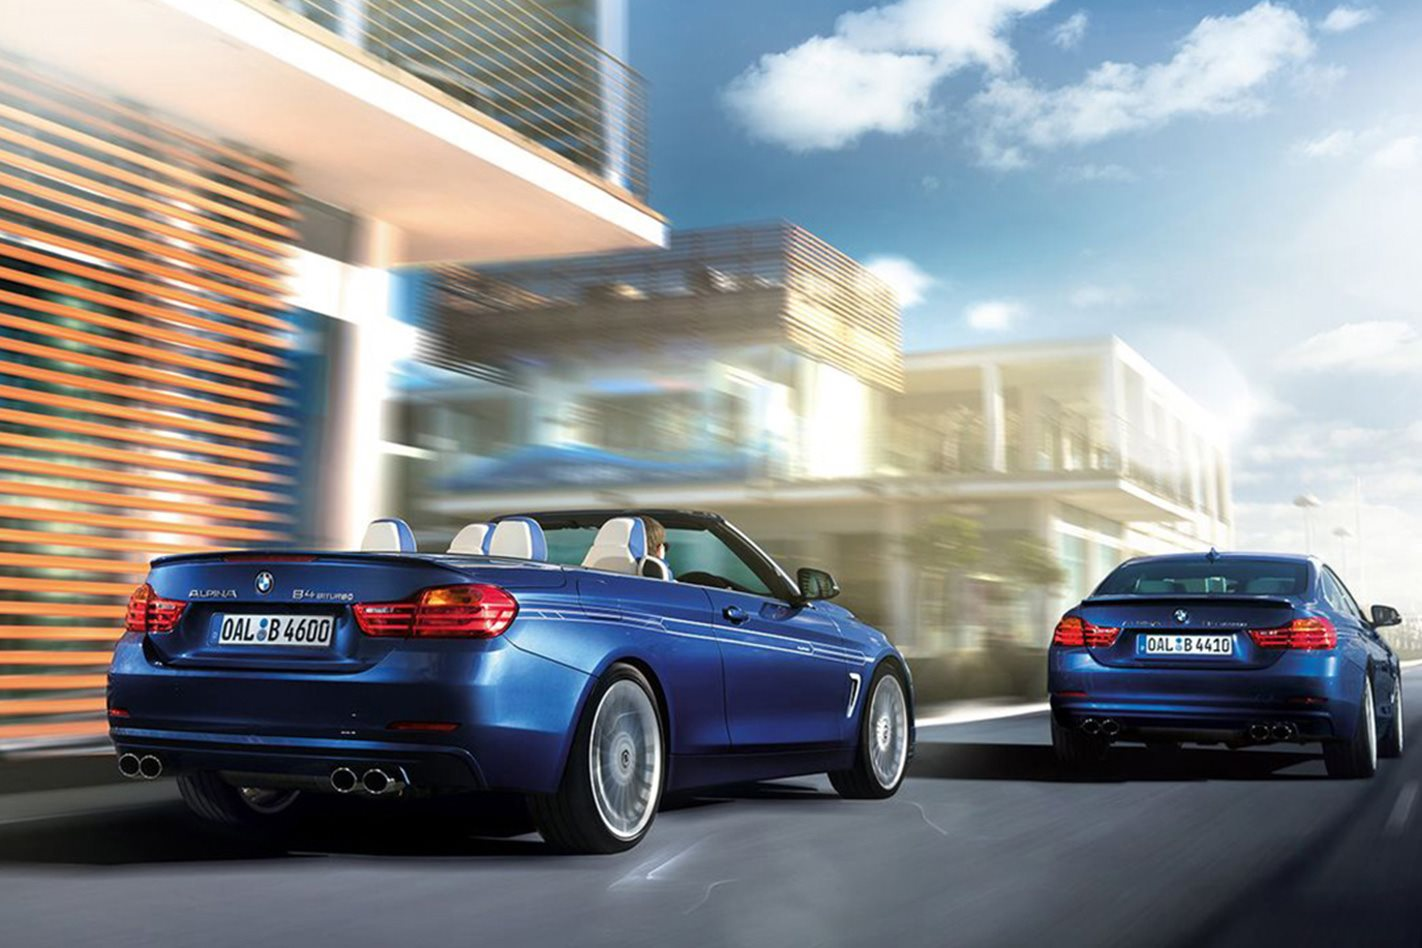 BMW-Alpina-B4-rear.jpg